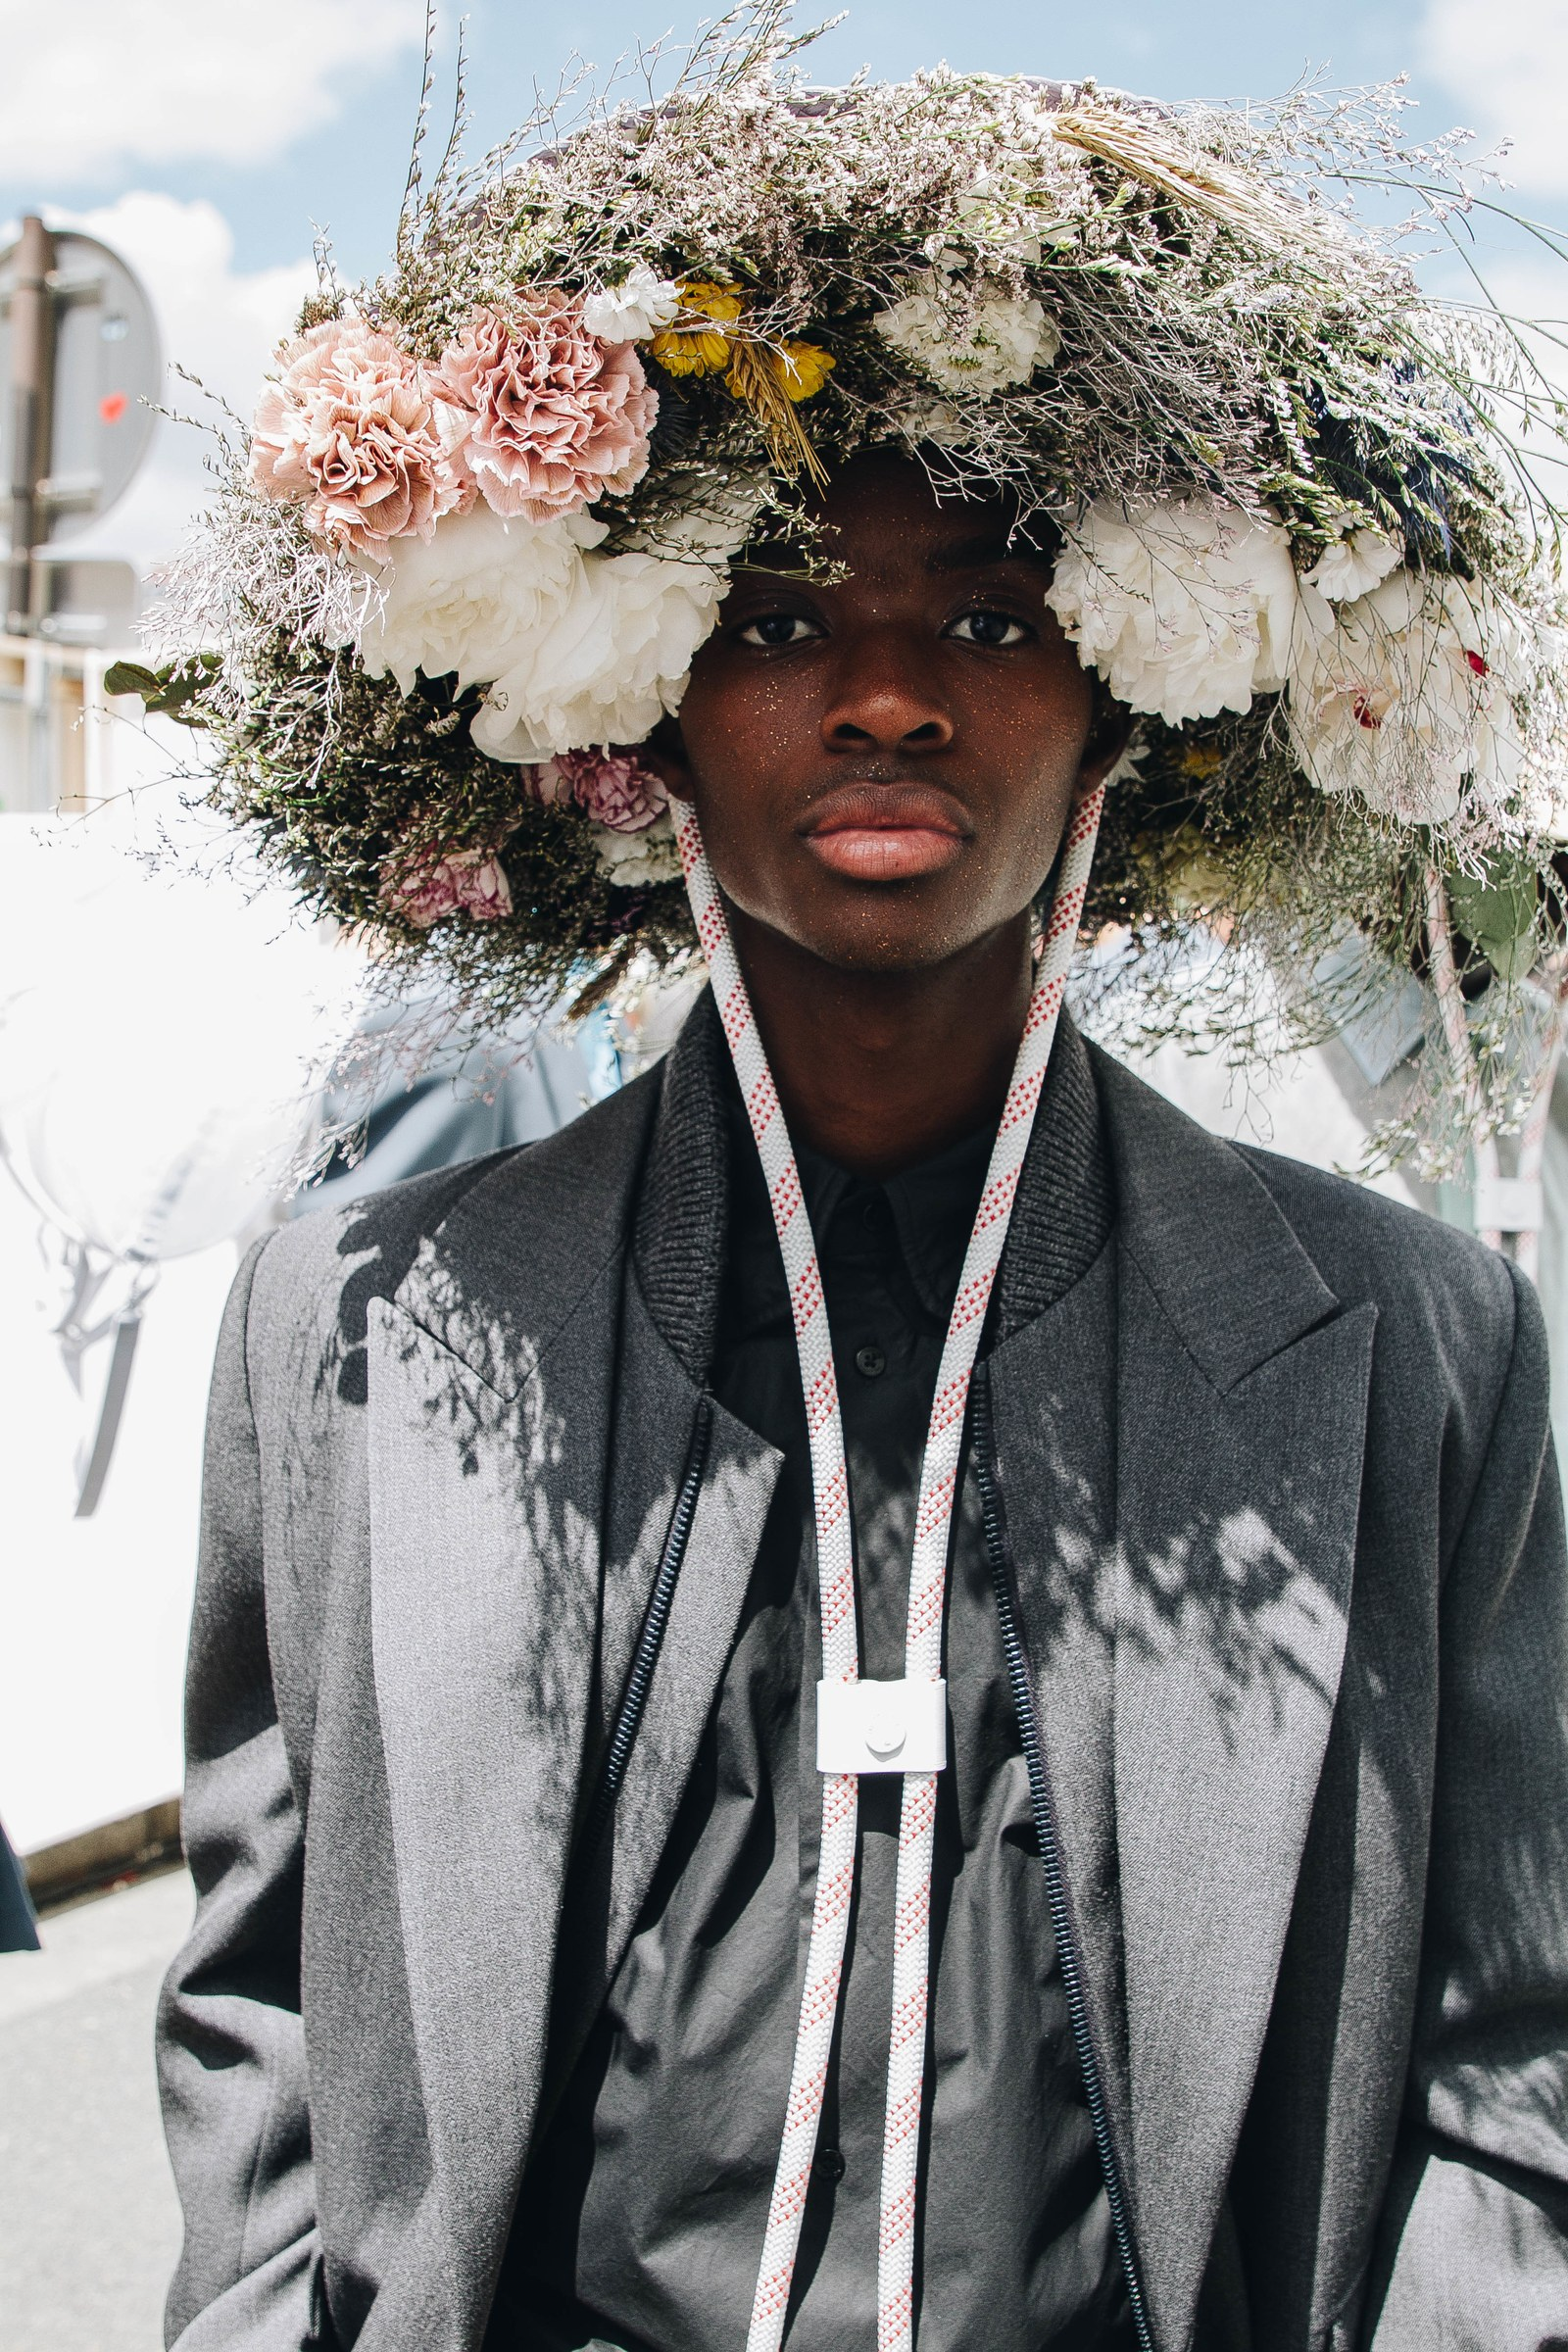 At Louis Vuitton, Virgil Abloh expressed his desire for diversity through floral imagery. Image  via